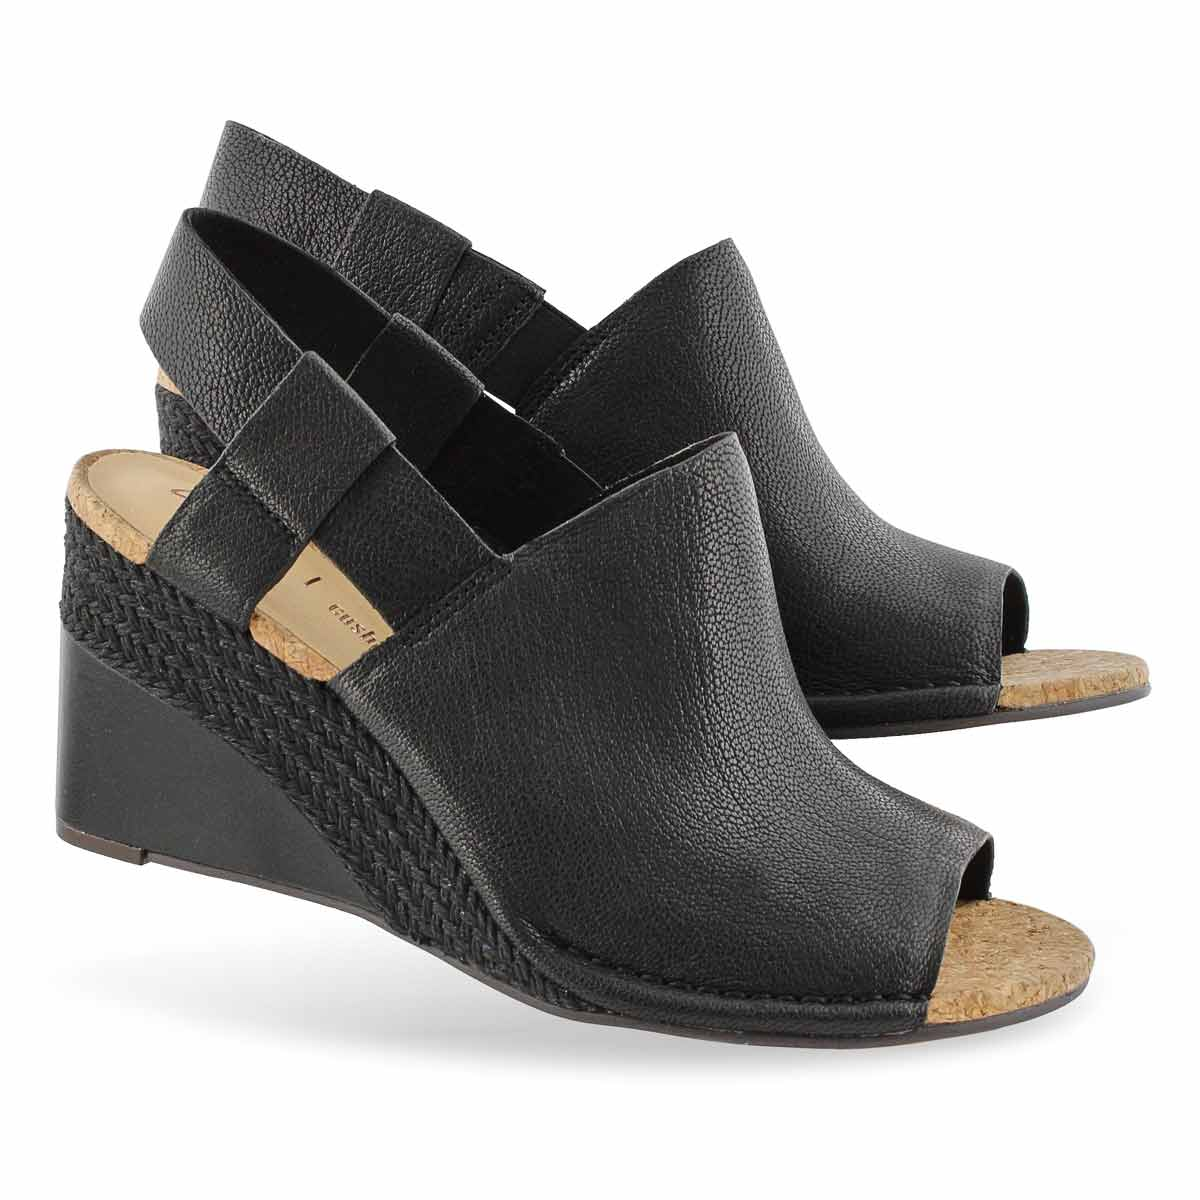 Lds Spiced Bay black dress wedge sandal